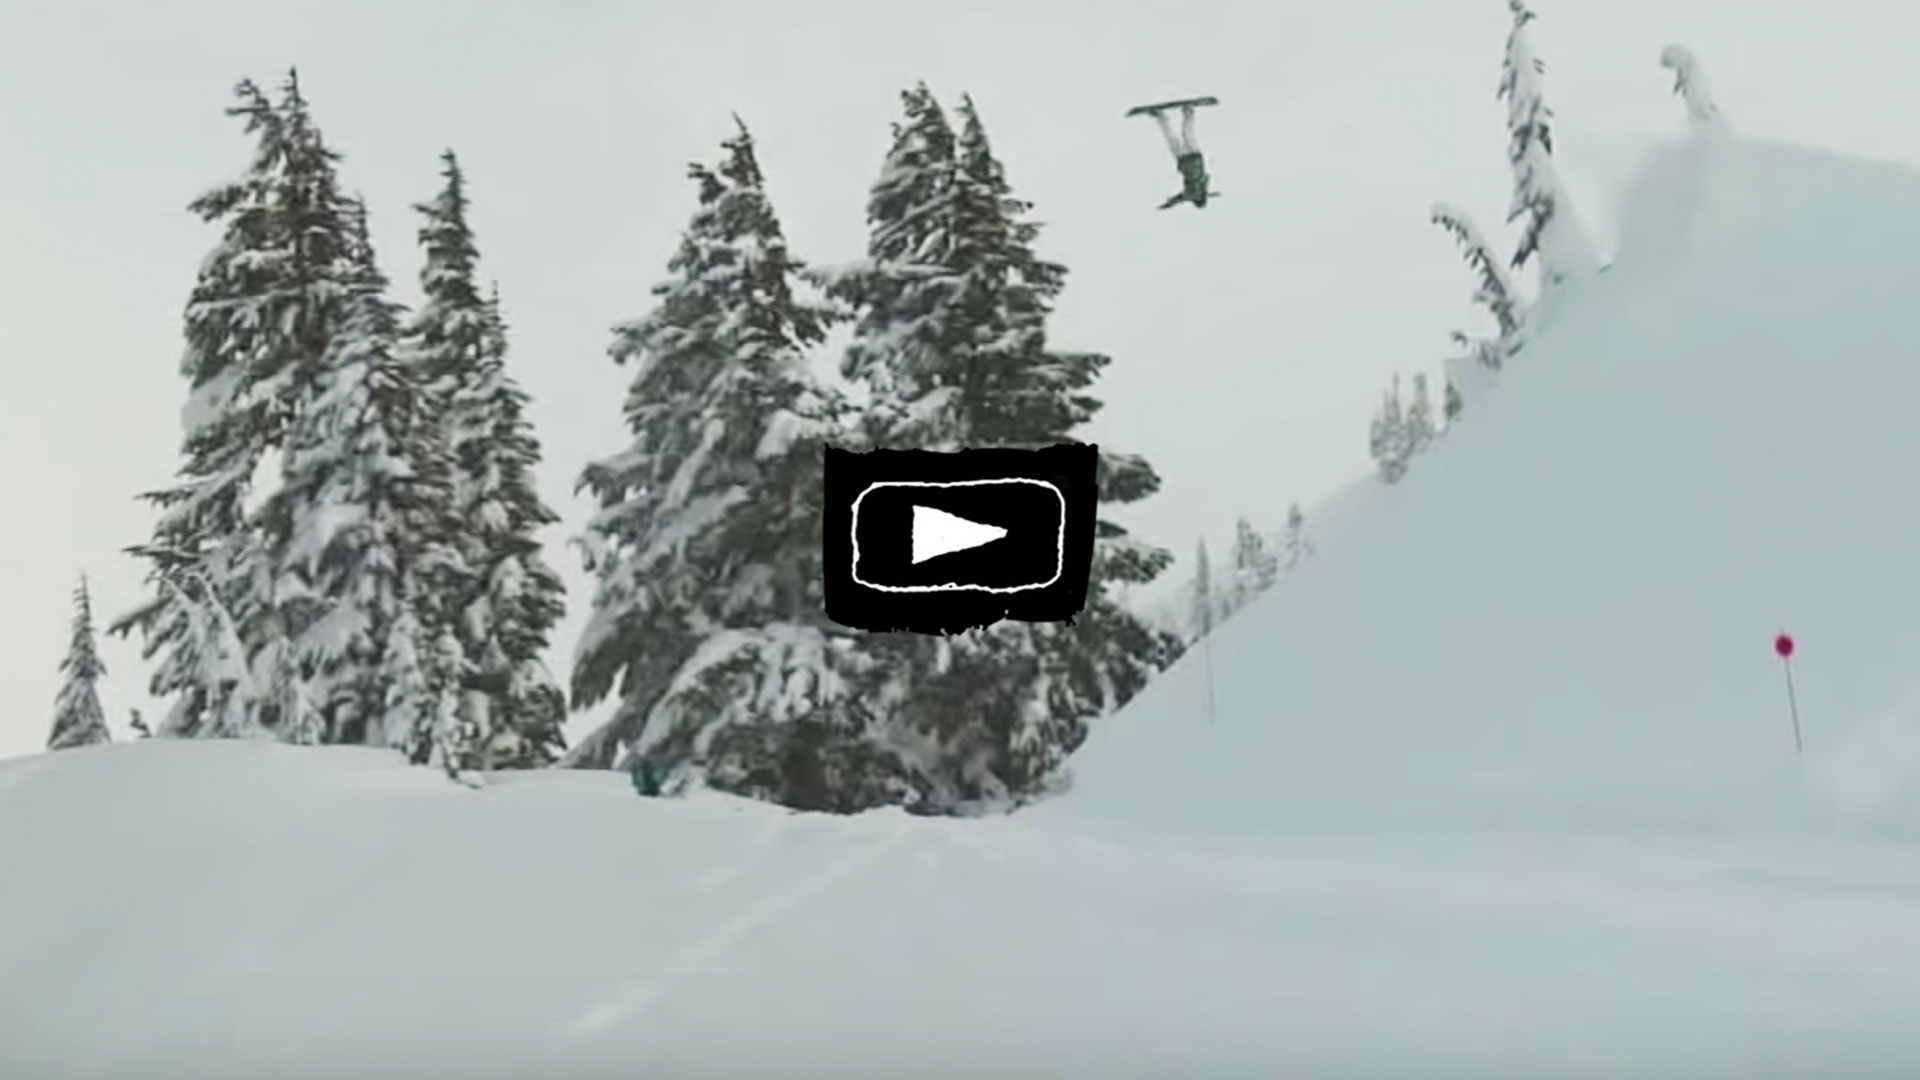 Best Snowboarding Crash Segment Ever? Two Minutes with Coonhead